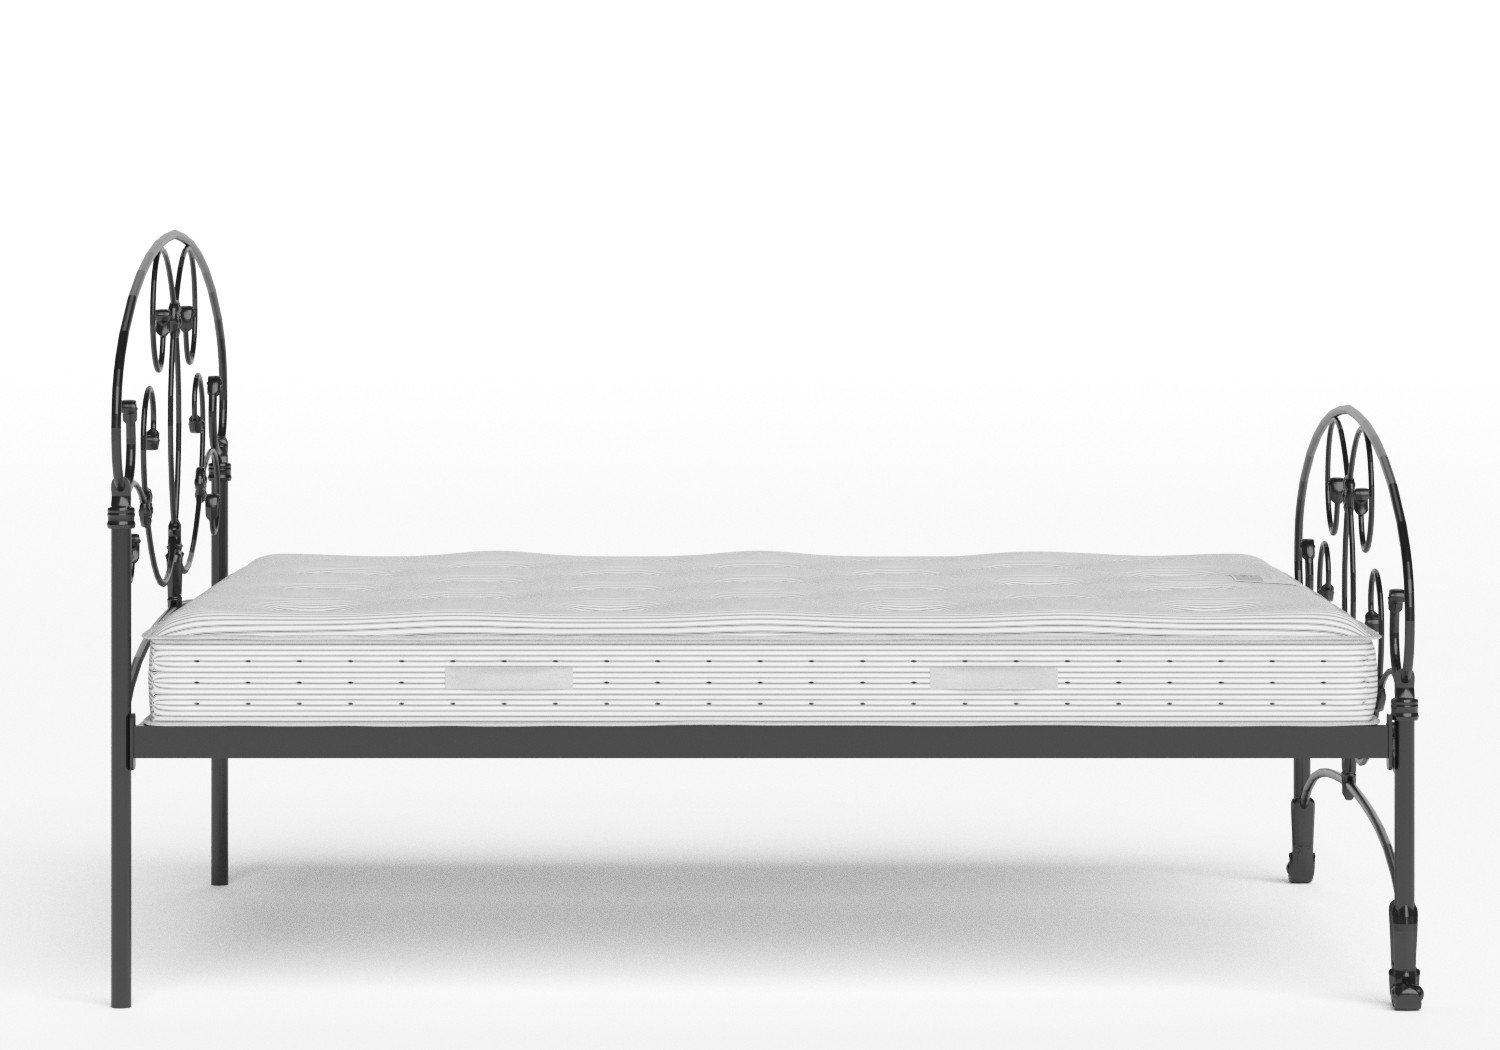 Arigna Iron/Metal Bed in Satin Black shown with Juno 1 mattress